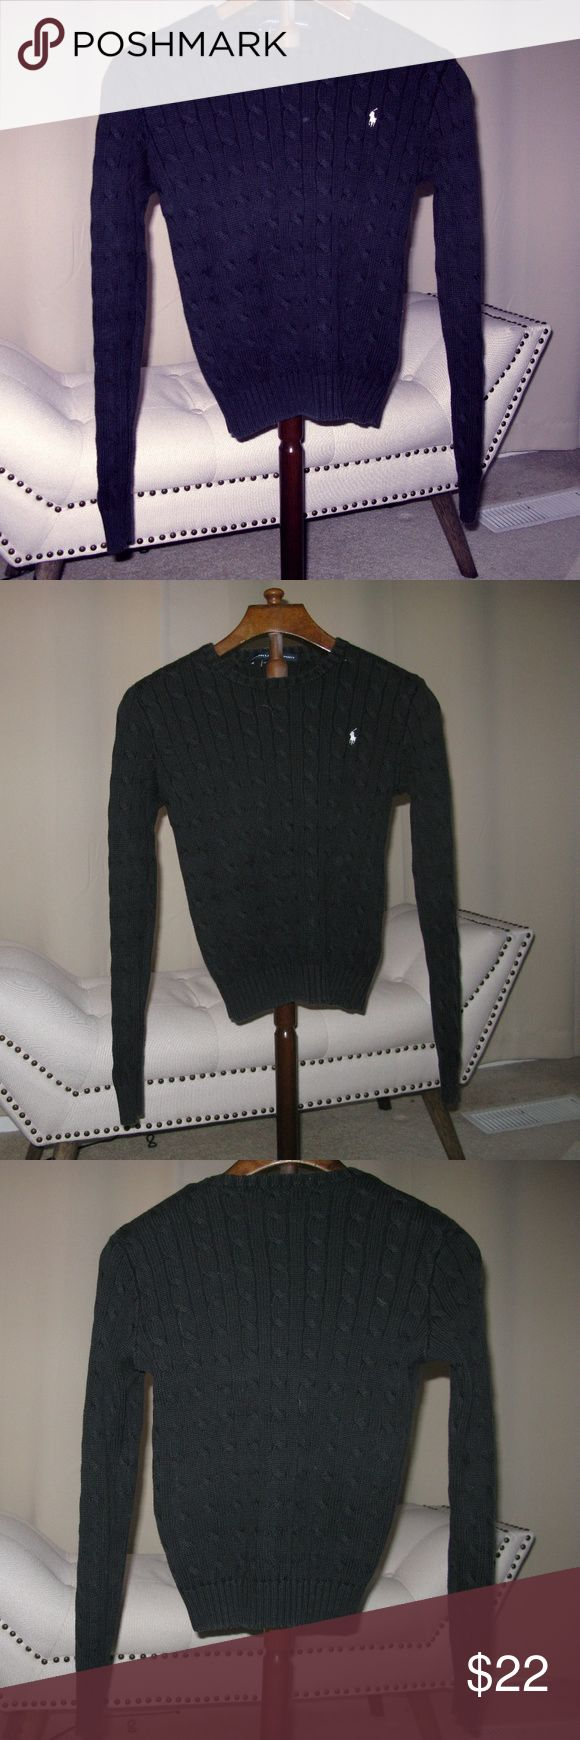 Ralph Lauren Cable Knit Sweater Great Essential for your Wardrobe.  Classic Black Cable Knit Sweater with White Ralph Lauren Logo.  Labeled Medium, runs small.  Beautiful Fit for a female.  Made of 100%  Cotton. Ralph Lauren Sport Tops